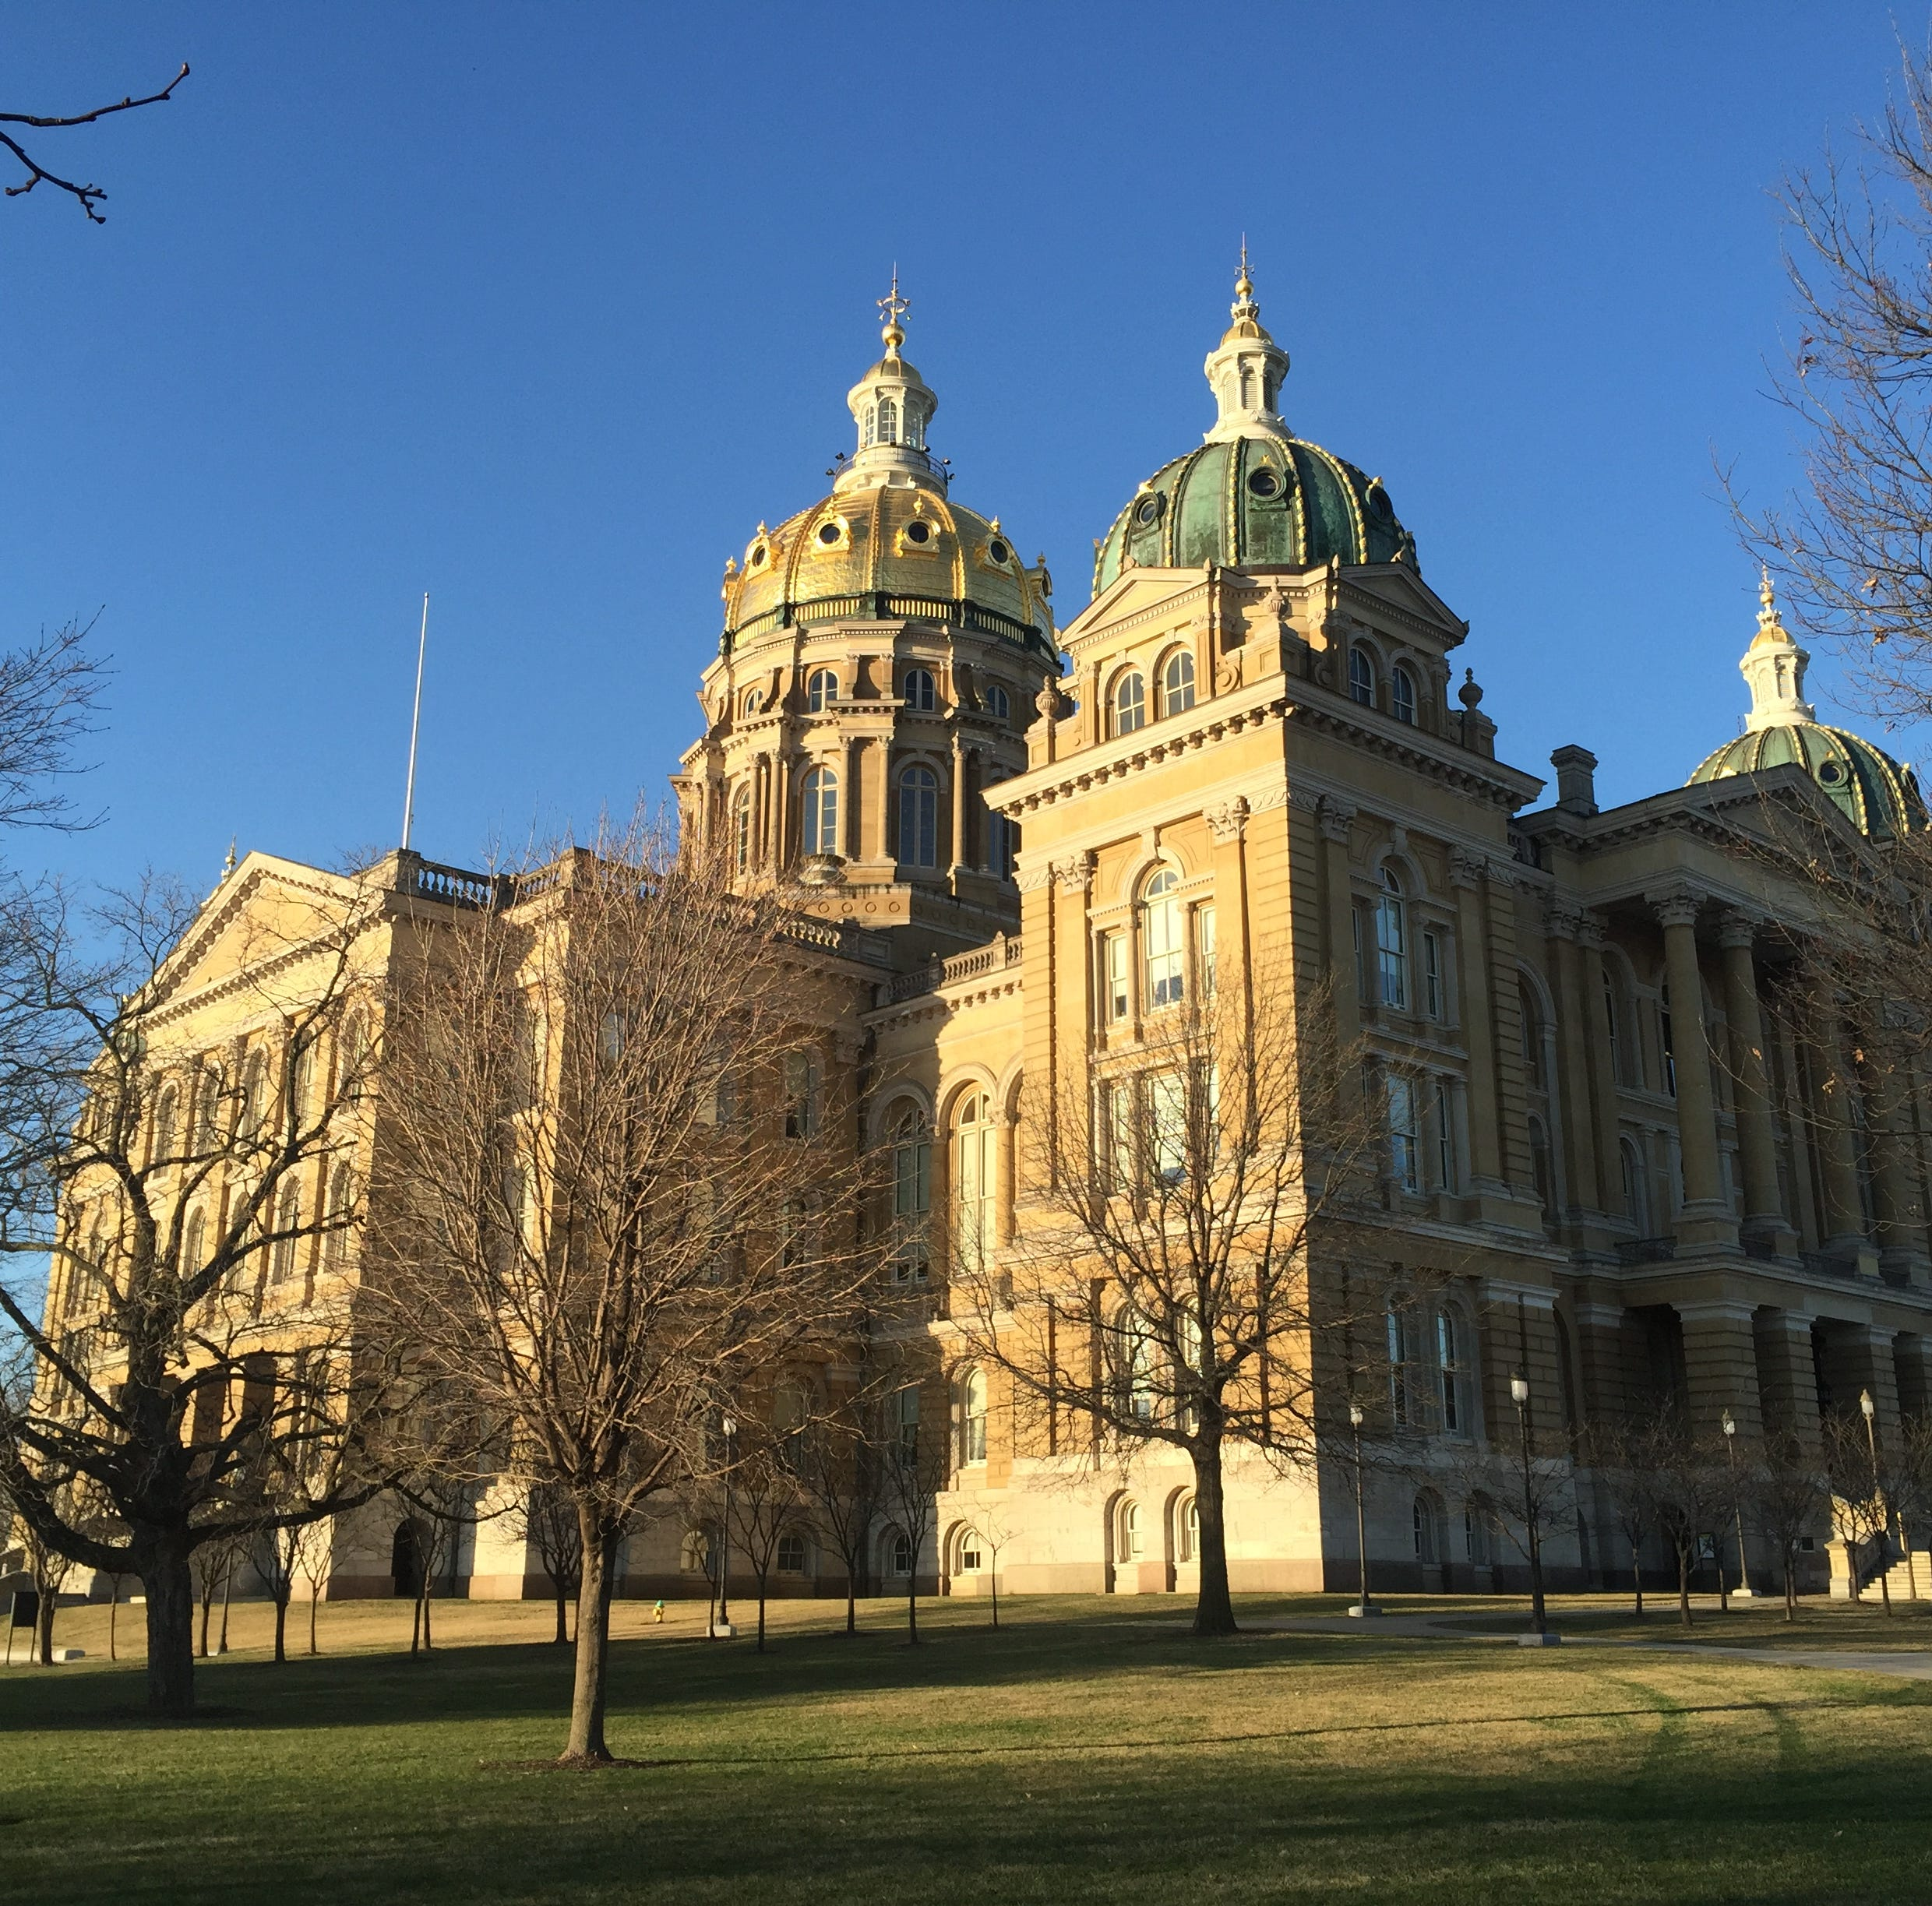 Capitol harassment: Here are the detailed allegations against current and past Iowa lawmakers and staff members